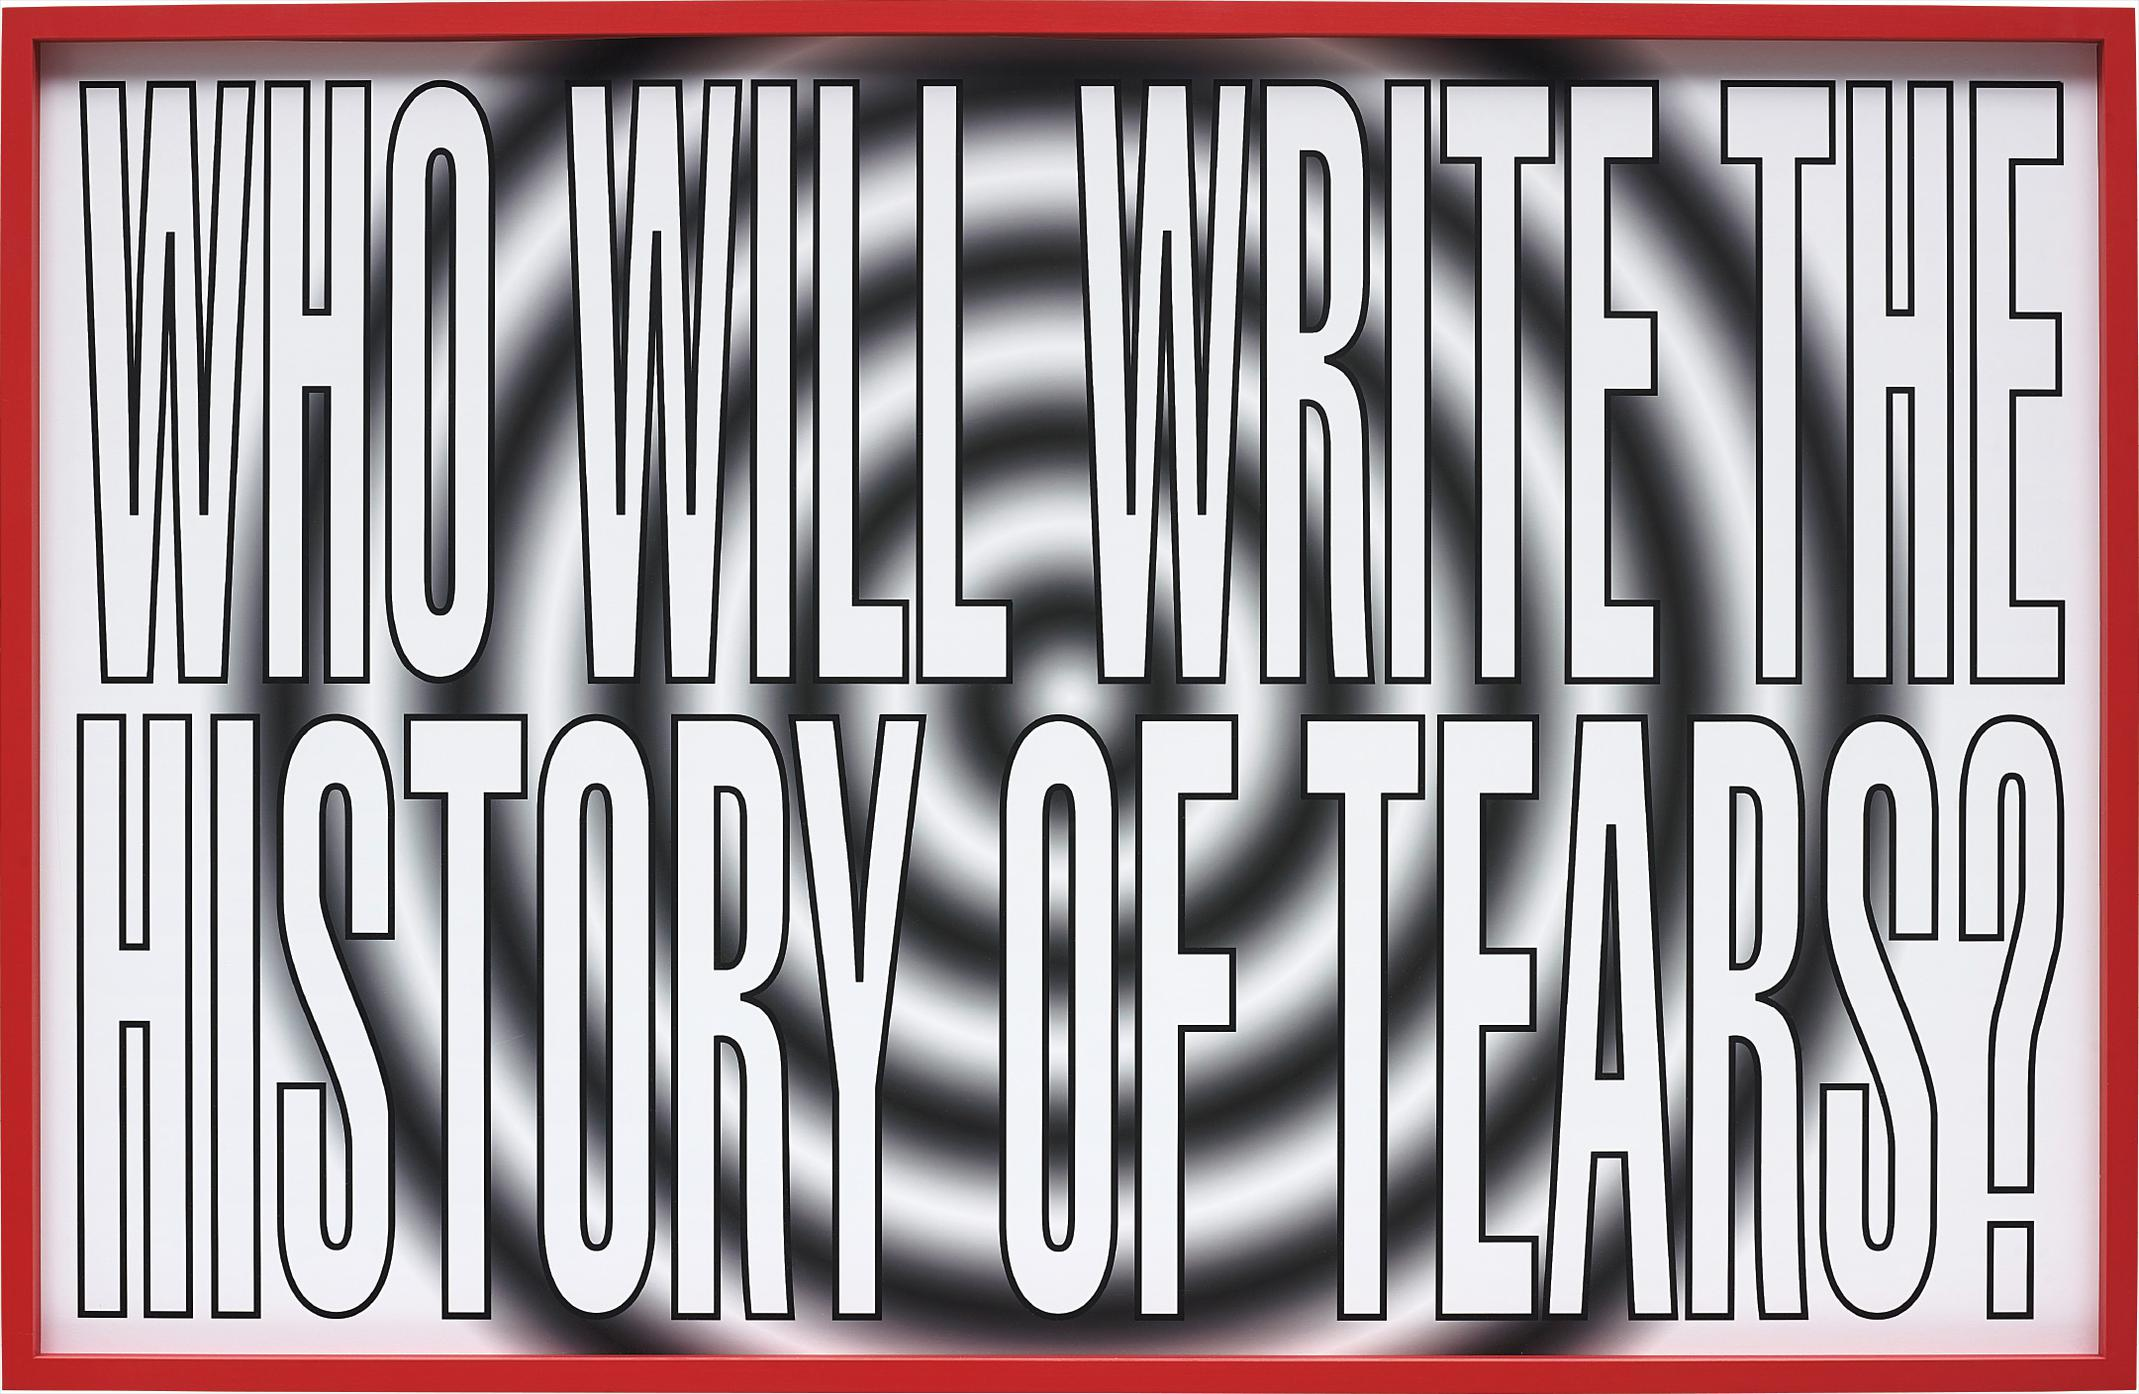 Barbara Kruger-Who Will Write The History Of Tears?-2011